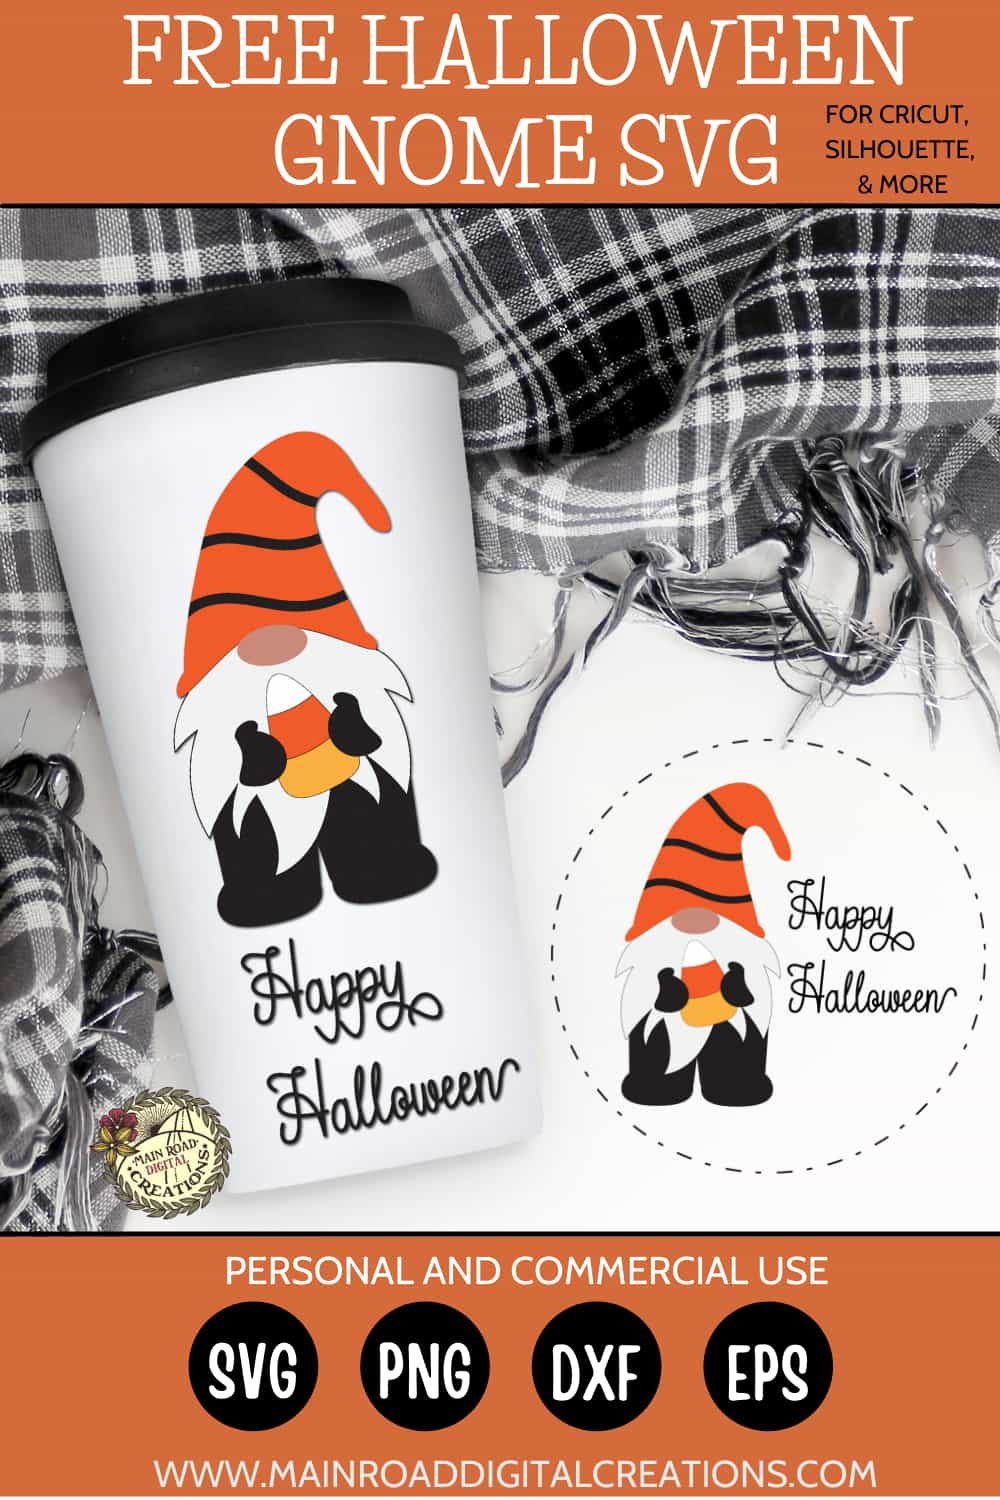 Halloween Gnome SVG Free, Happy Halloween Gnome design, Candy corn cut file, Halloween design for round sign, Gnome SVG design, Gnome Fall Design, Cricut cut files free, Free SVG Designs